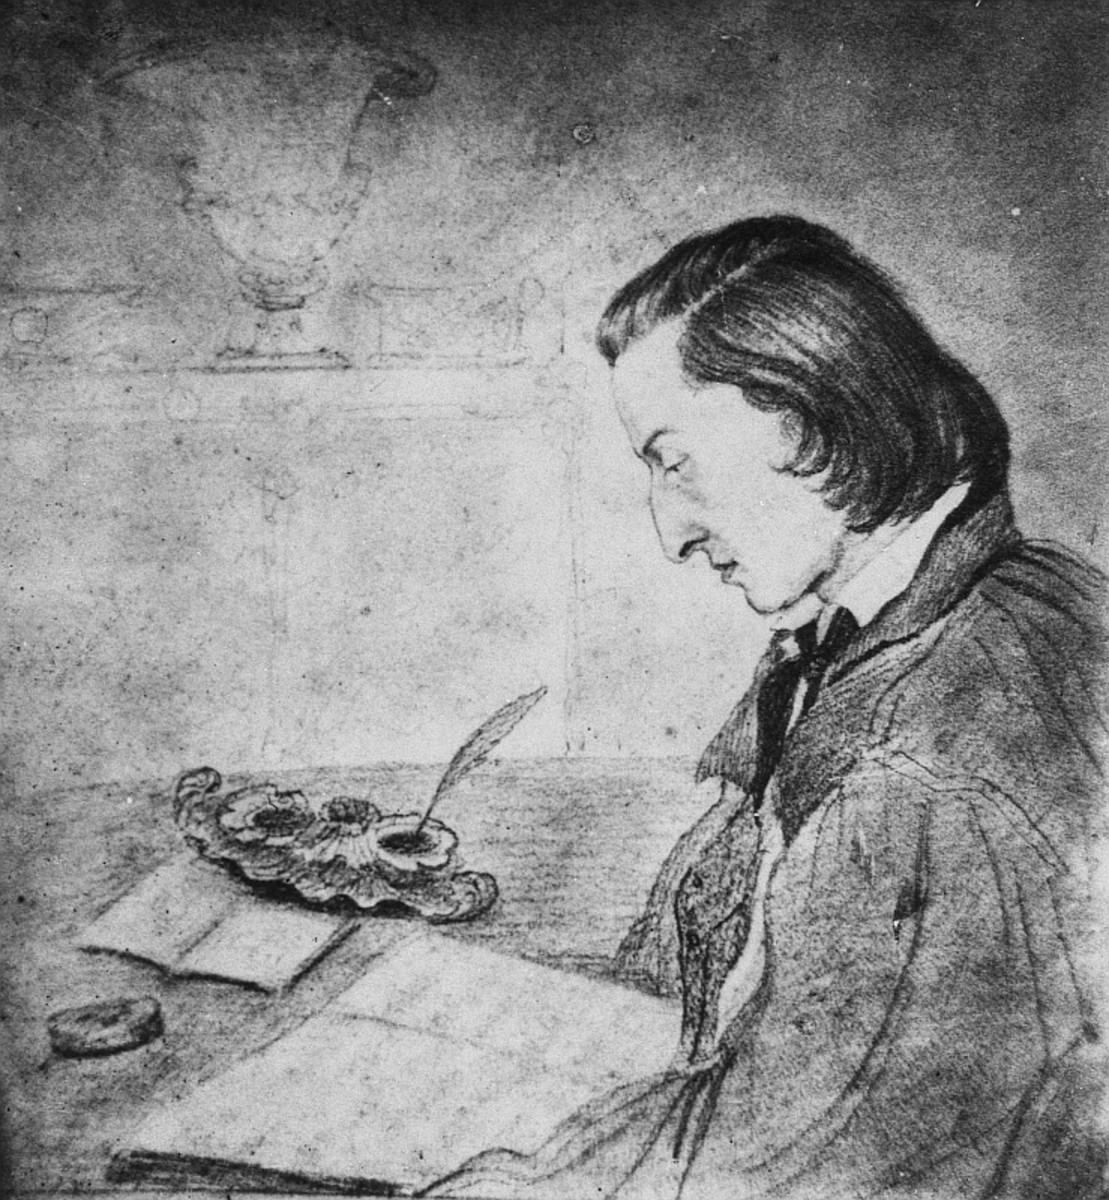 Sketch of Chopin by his lover George Sands, 1841.